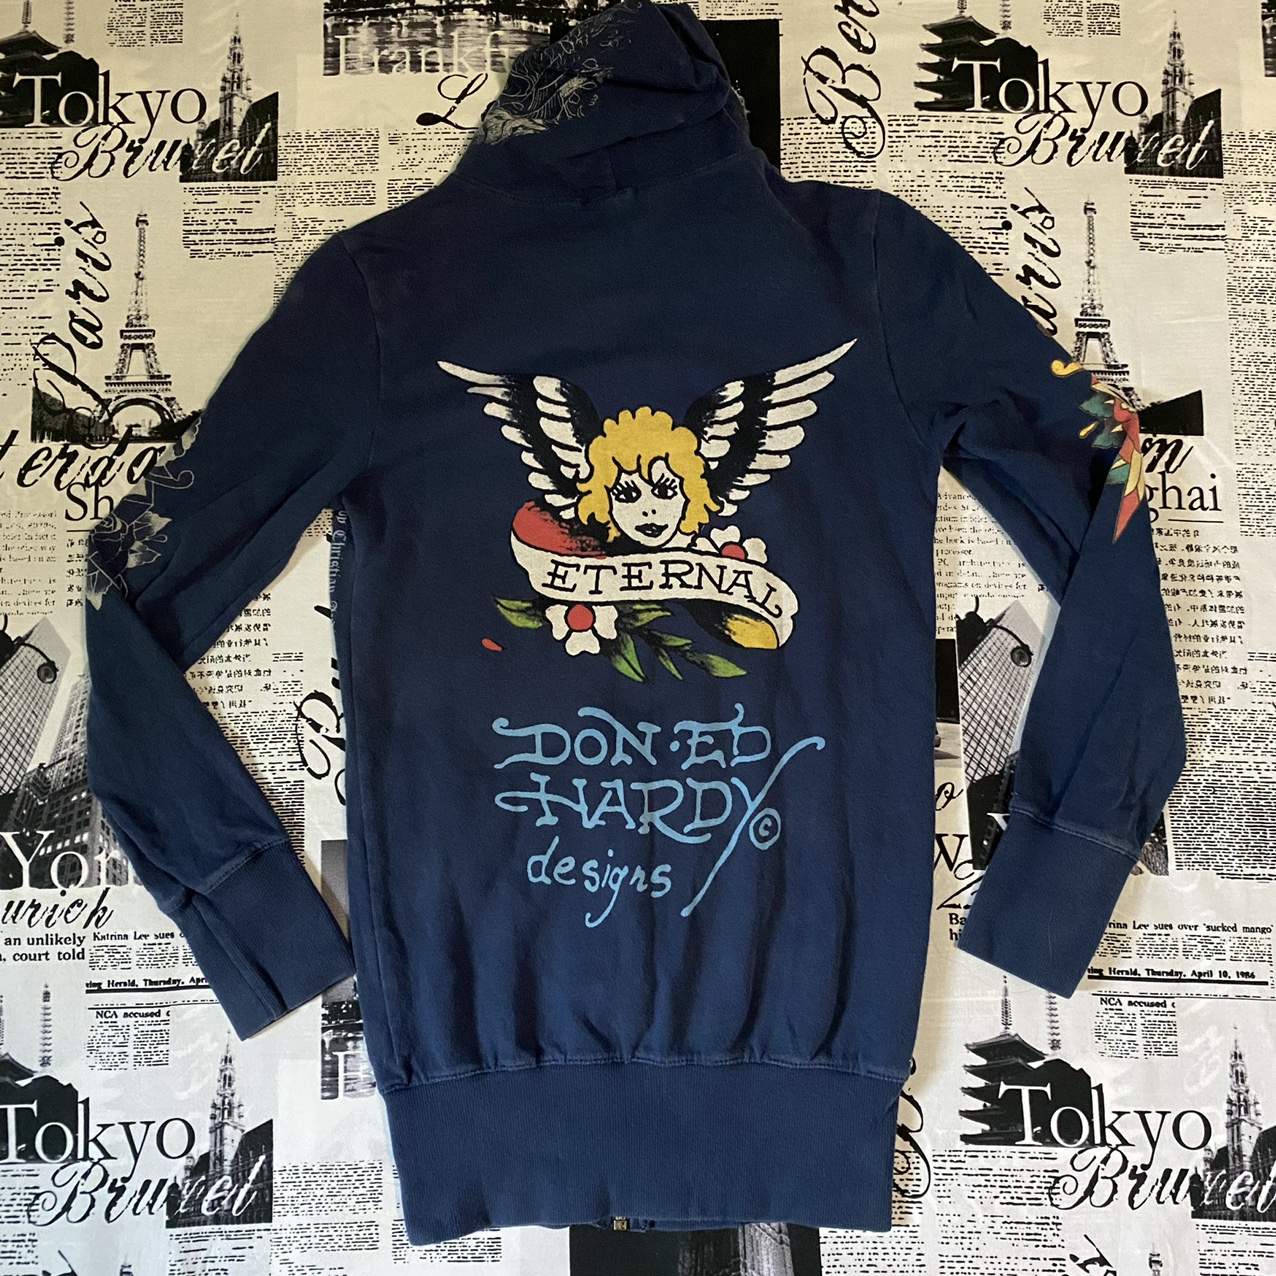 Product Image 1 - This Ed Hardy hoodie is